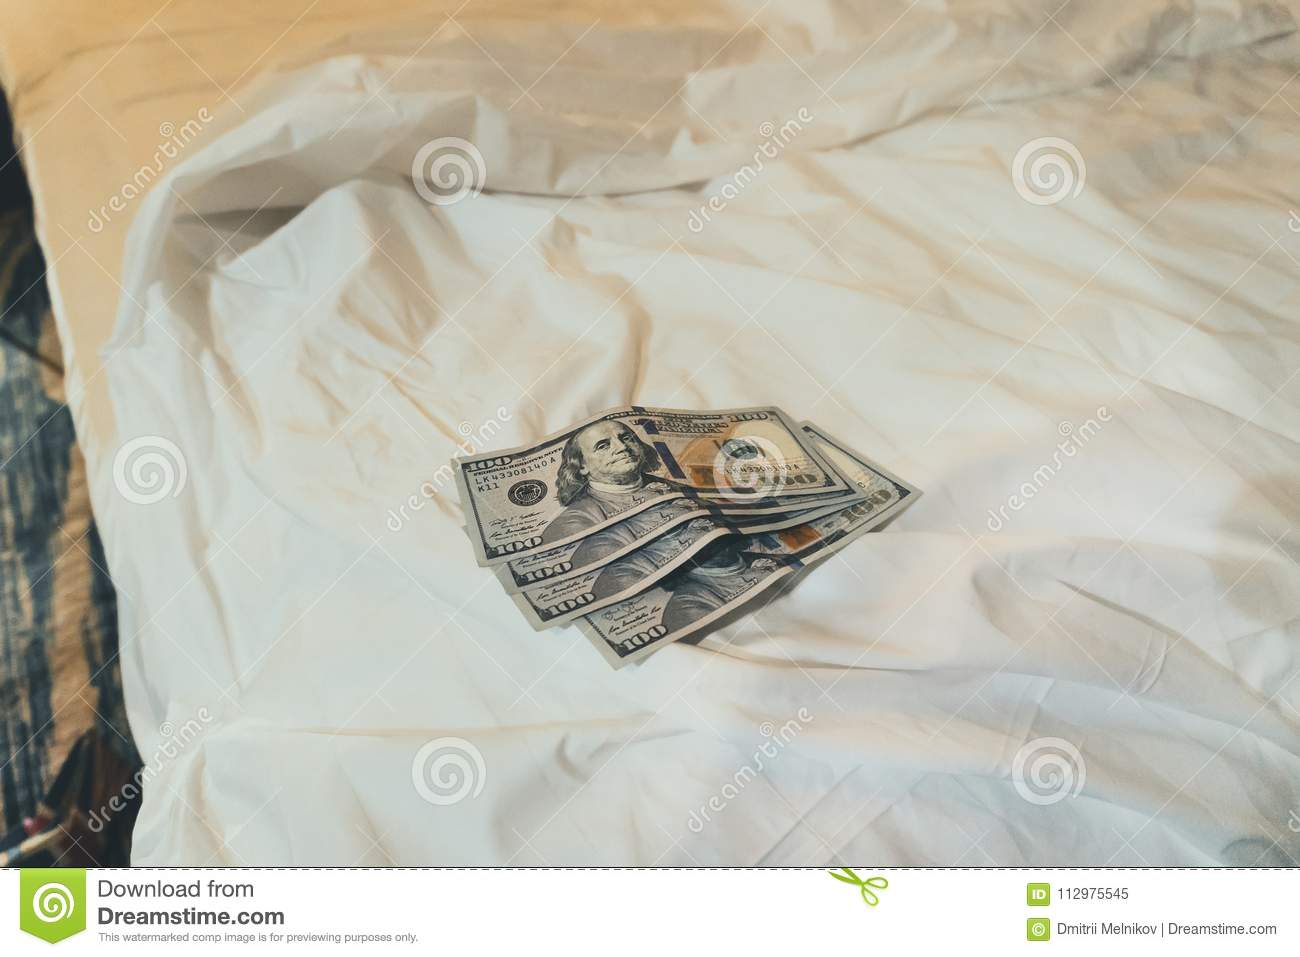 bed and money to symbolize the cost of sex.